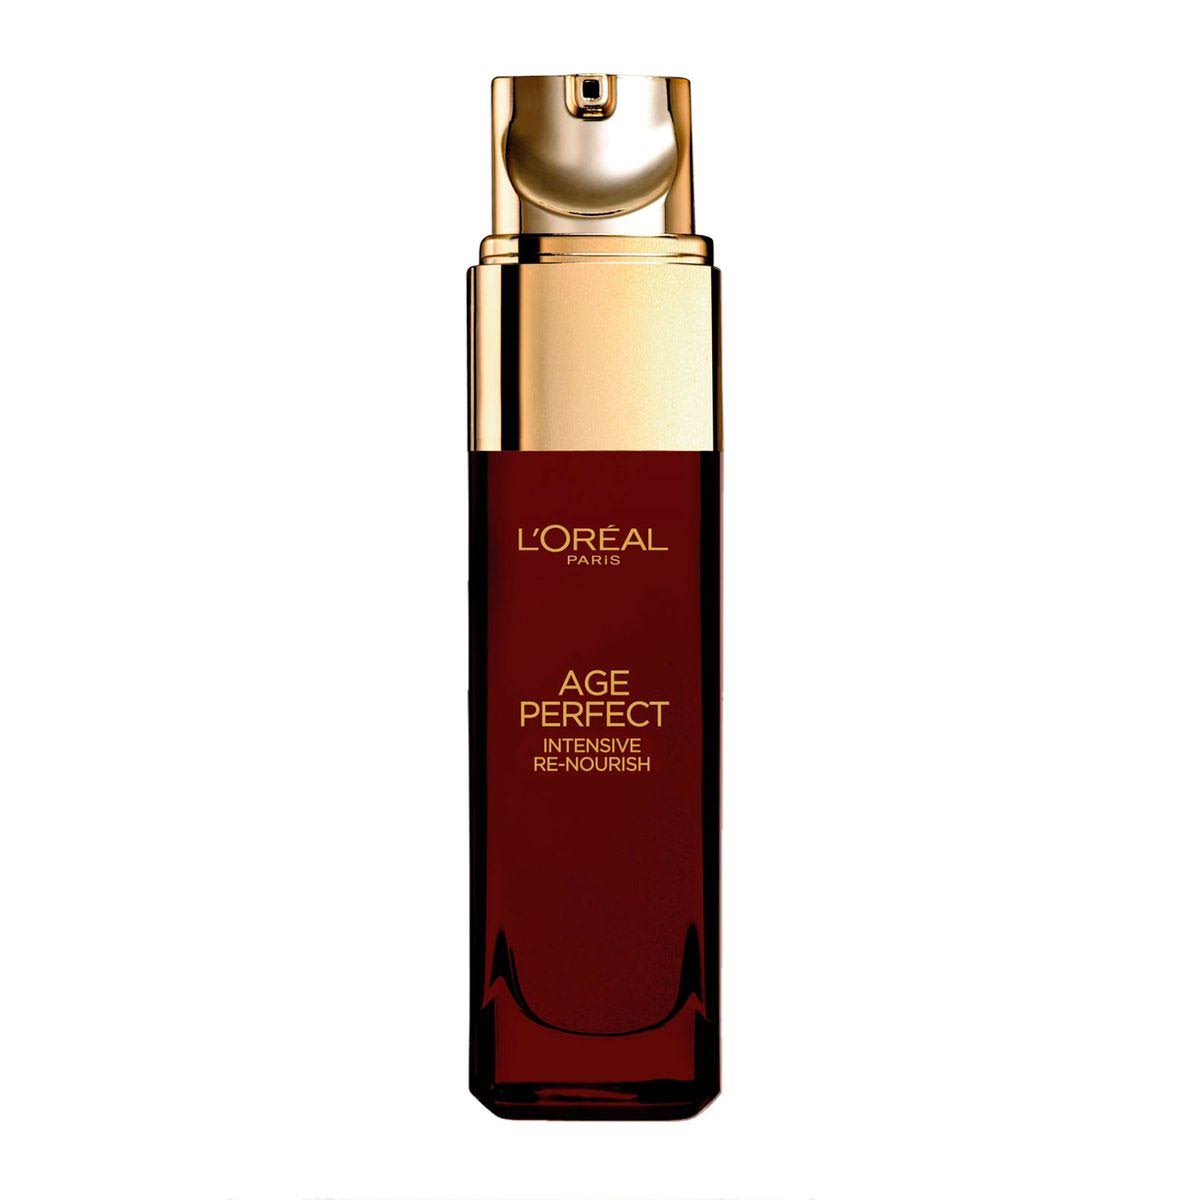 L'Oreal Paris Age Perfect Intensive Renourish Manuka Honey Serum 30ml